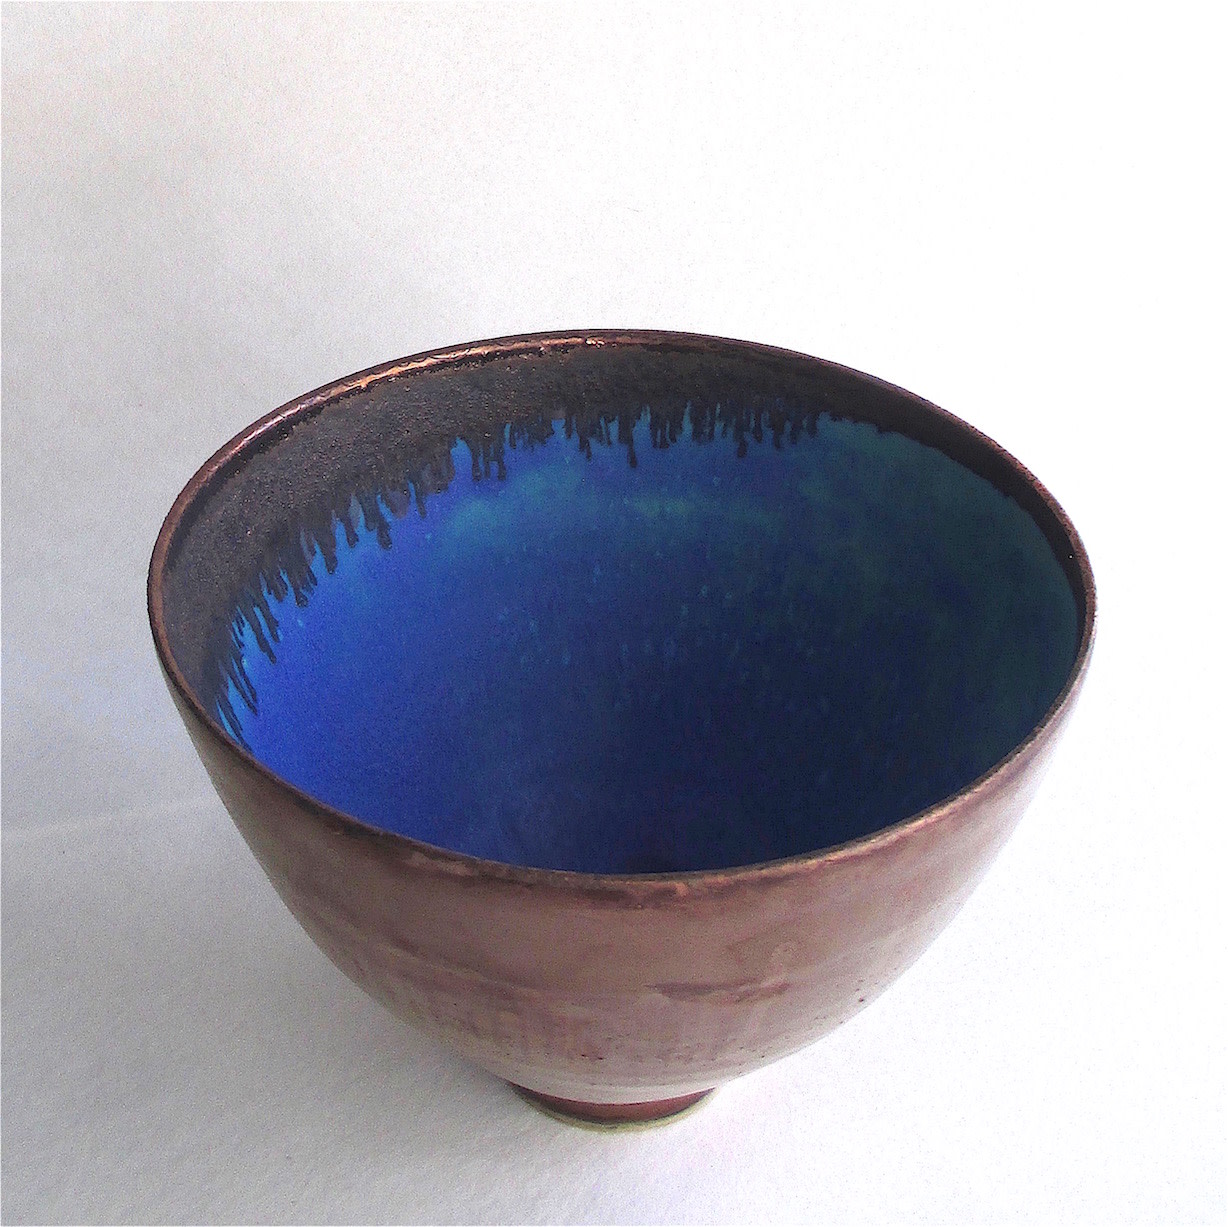 <span class=&#34;link fancybox-details-link&#34;><a href=&#34;/artists/44-sarah-perry/works/6004-sarah-perry-copper-lustred-blue-pool-bowl-2018/&#34;>View Detail Page</a></span><div class=&#34;artist&#34;><strong>Sarah Perry</strong></div> <div class=&#34;title&#34;><em>Copper Lustred Blue Pool Bowl</em>, 2018</div> <div class=&#34;signed_and_dated&#34;>stamped by the artist's studio mark</div> <div class=&#34;medium&#34;>thrown stoneware, glazed</div> <div class=&#34;dimensions&#34;>16.3 x 23 cm<br /> 6 3/8 x 9 1/8 inches</div><div class=&#34;price&#34;>£310.00</div><div class=&#34;copyright_line&#34;>Copyright The Artist</div>